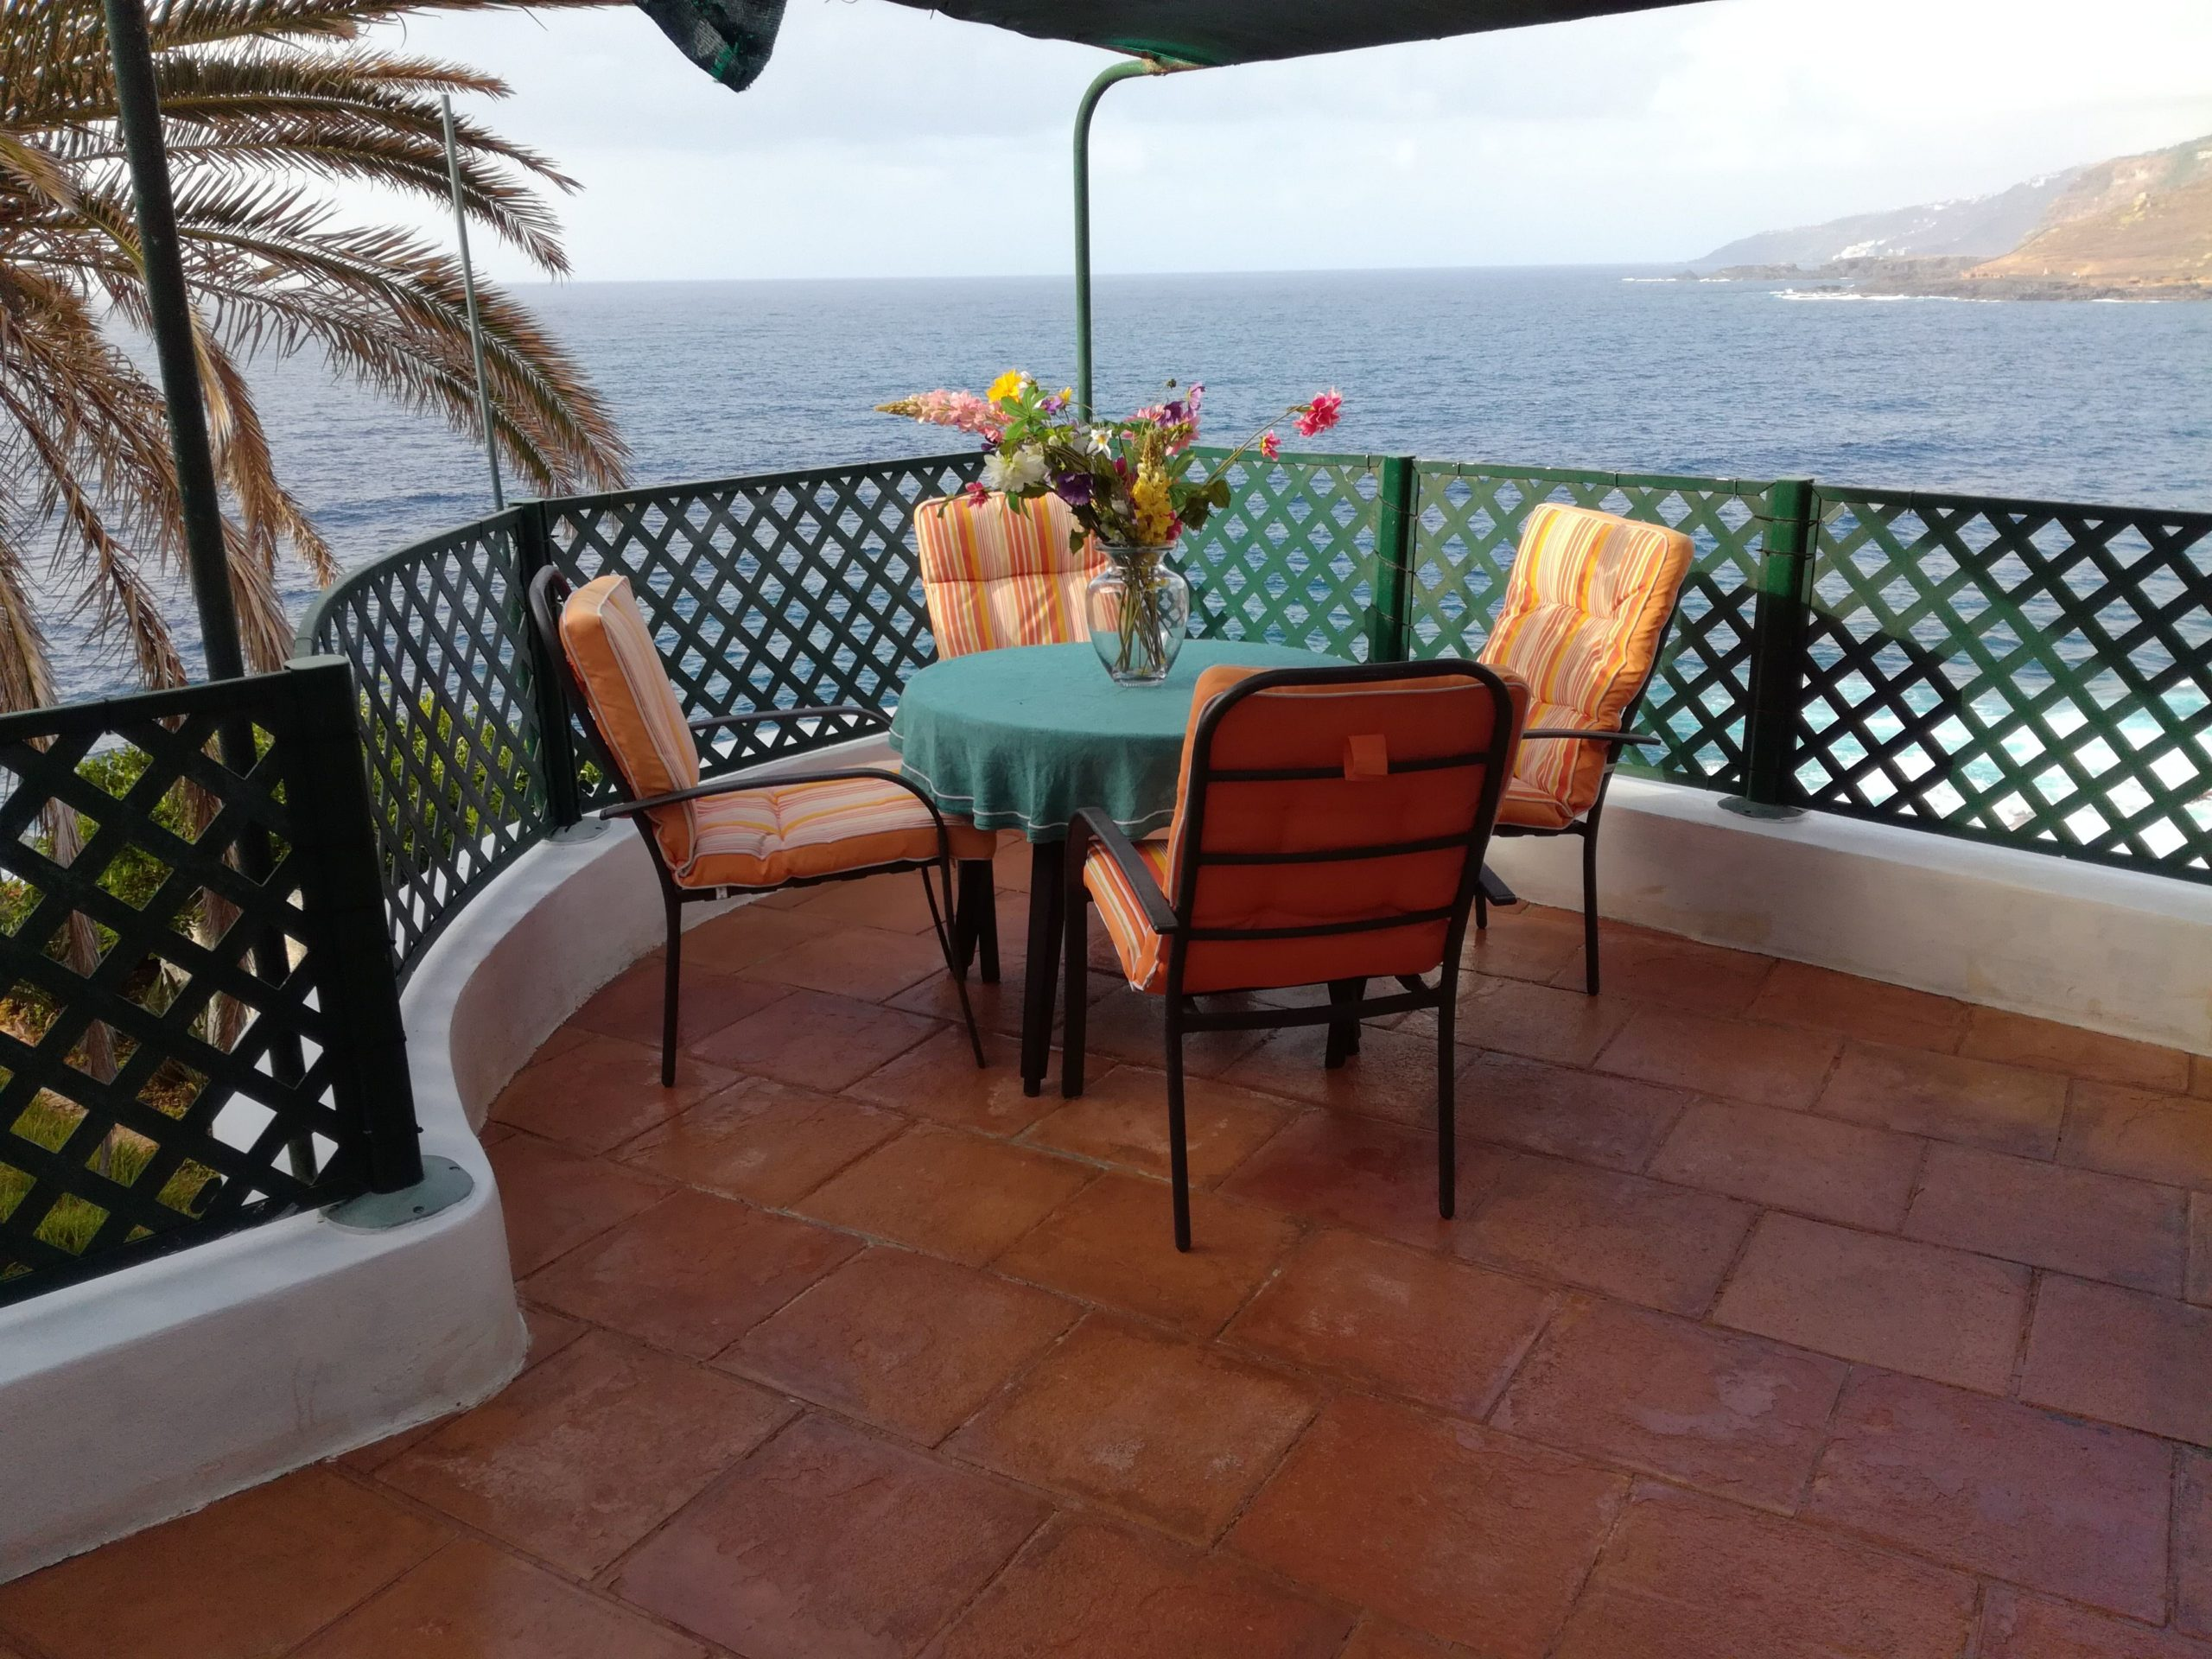 Holiday-Home-Directly-on-the-Sea-Tenerife-13